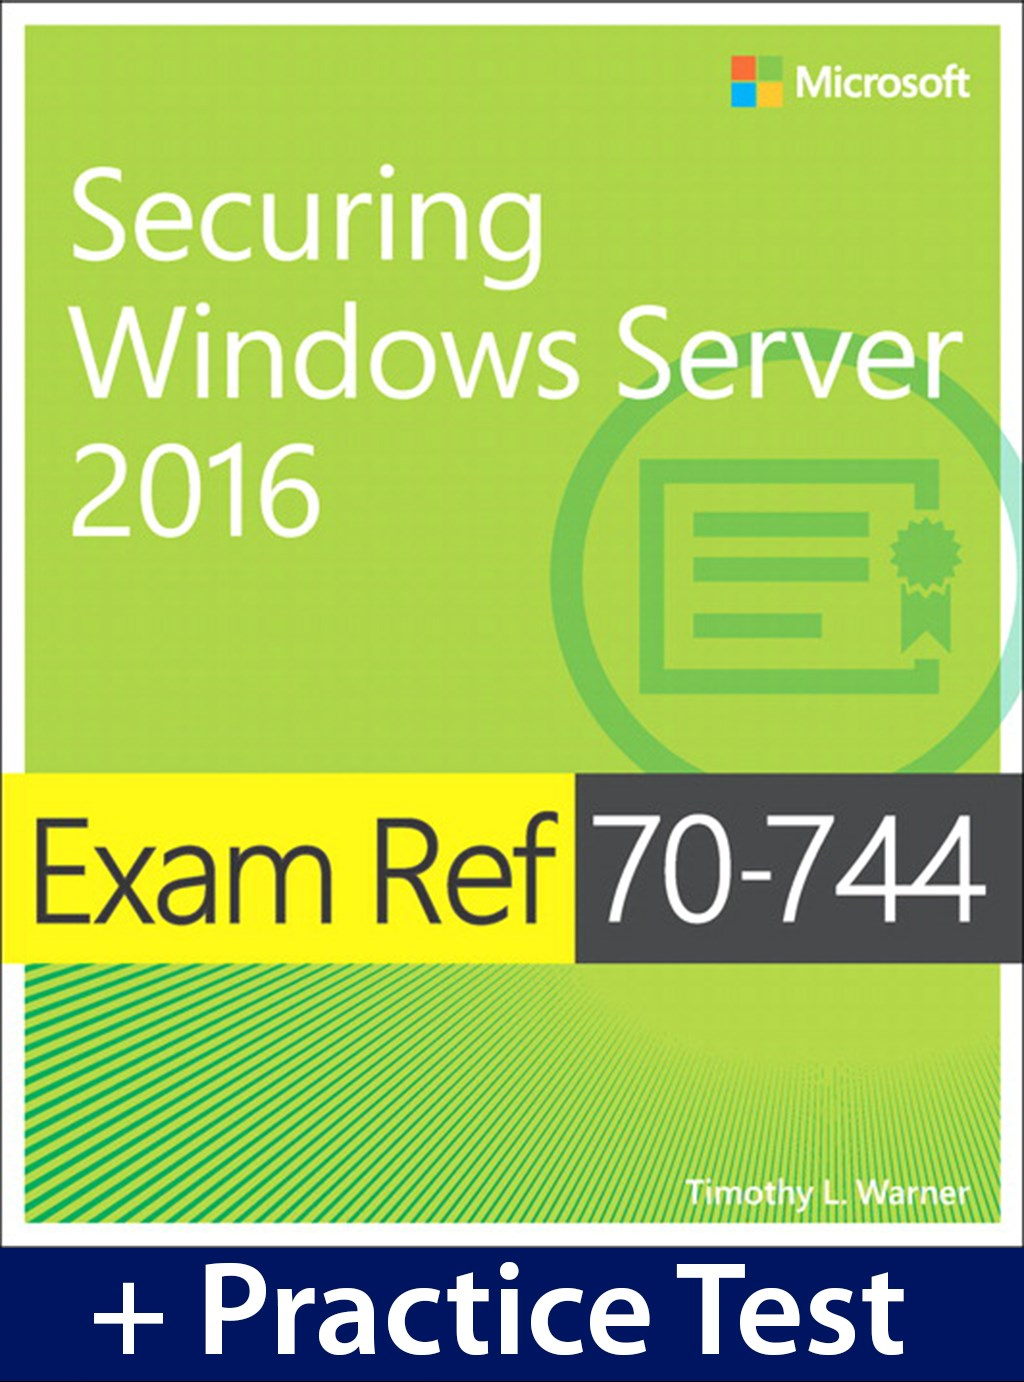 Exam Ref 70-744 Securing Windows Server 2016 with Practice Test